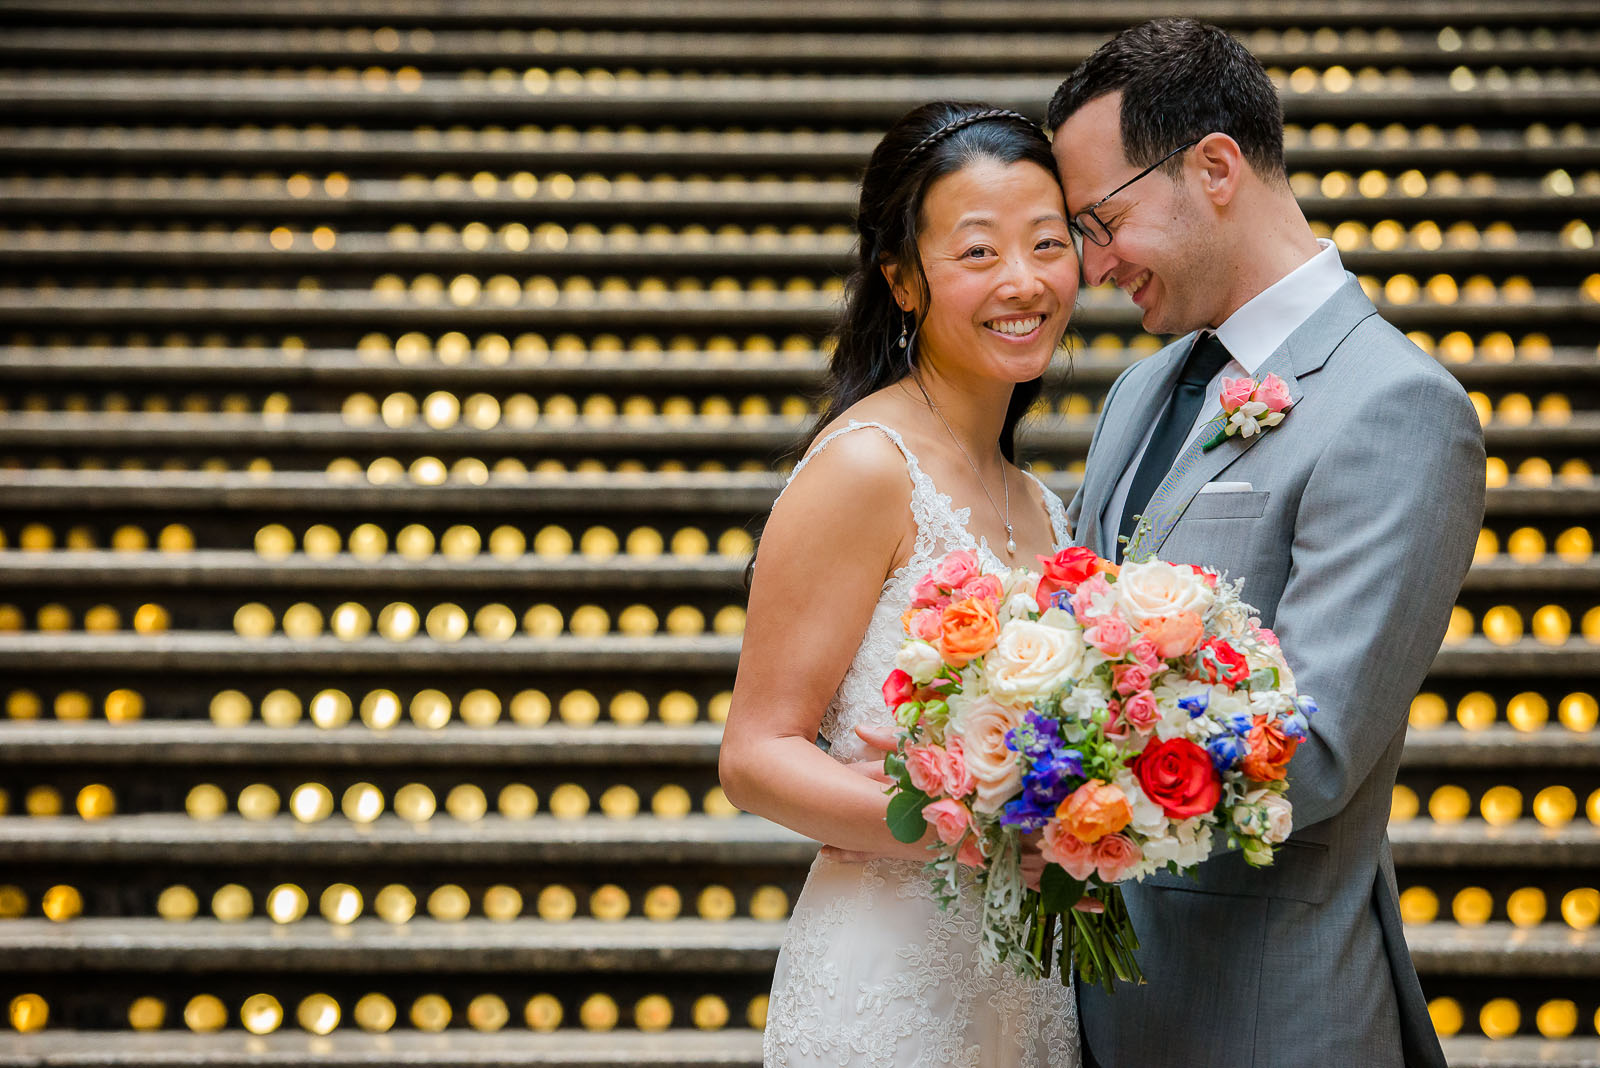 Eric_and_Christy_Photography_Blog_Wedding_Anne_Michael-36